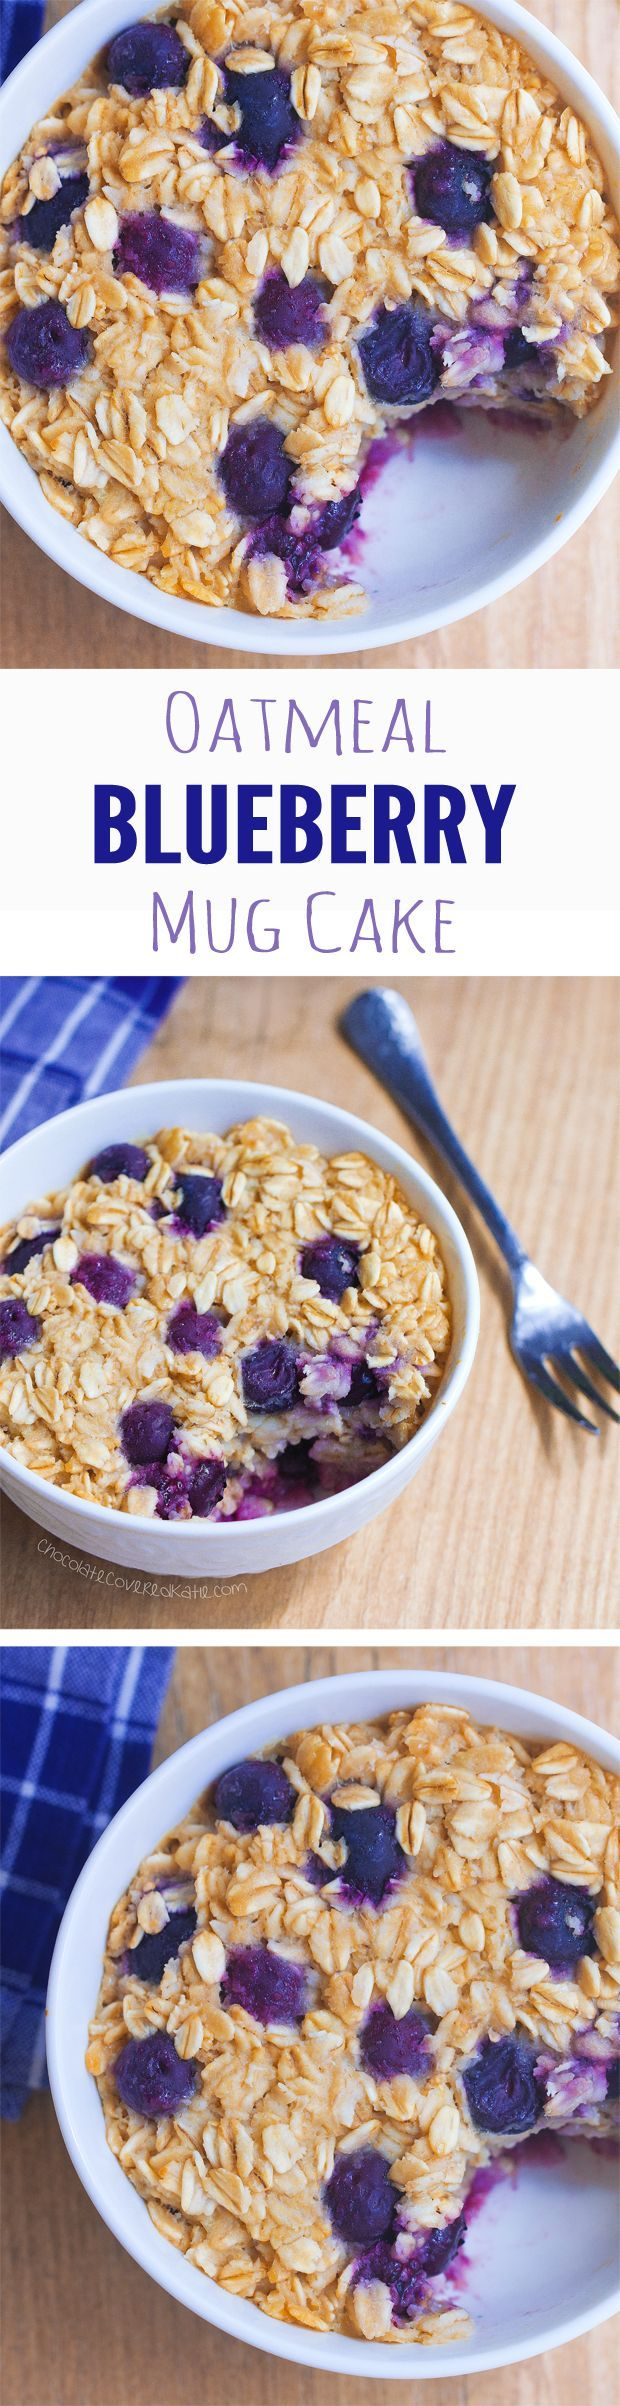 Blueberry Mug Cake - Ingredients: 1/2 cup rolled oats, 1/3 cup blueberries, 1 tsp vanilla extract, 1/2 tsp... Full recipe: http://chocolatecoveredkatie.com /choccoveredkt/